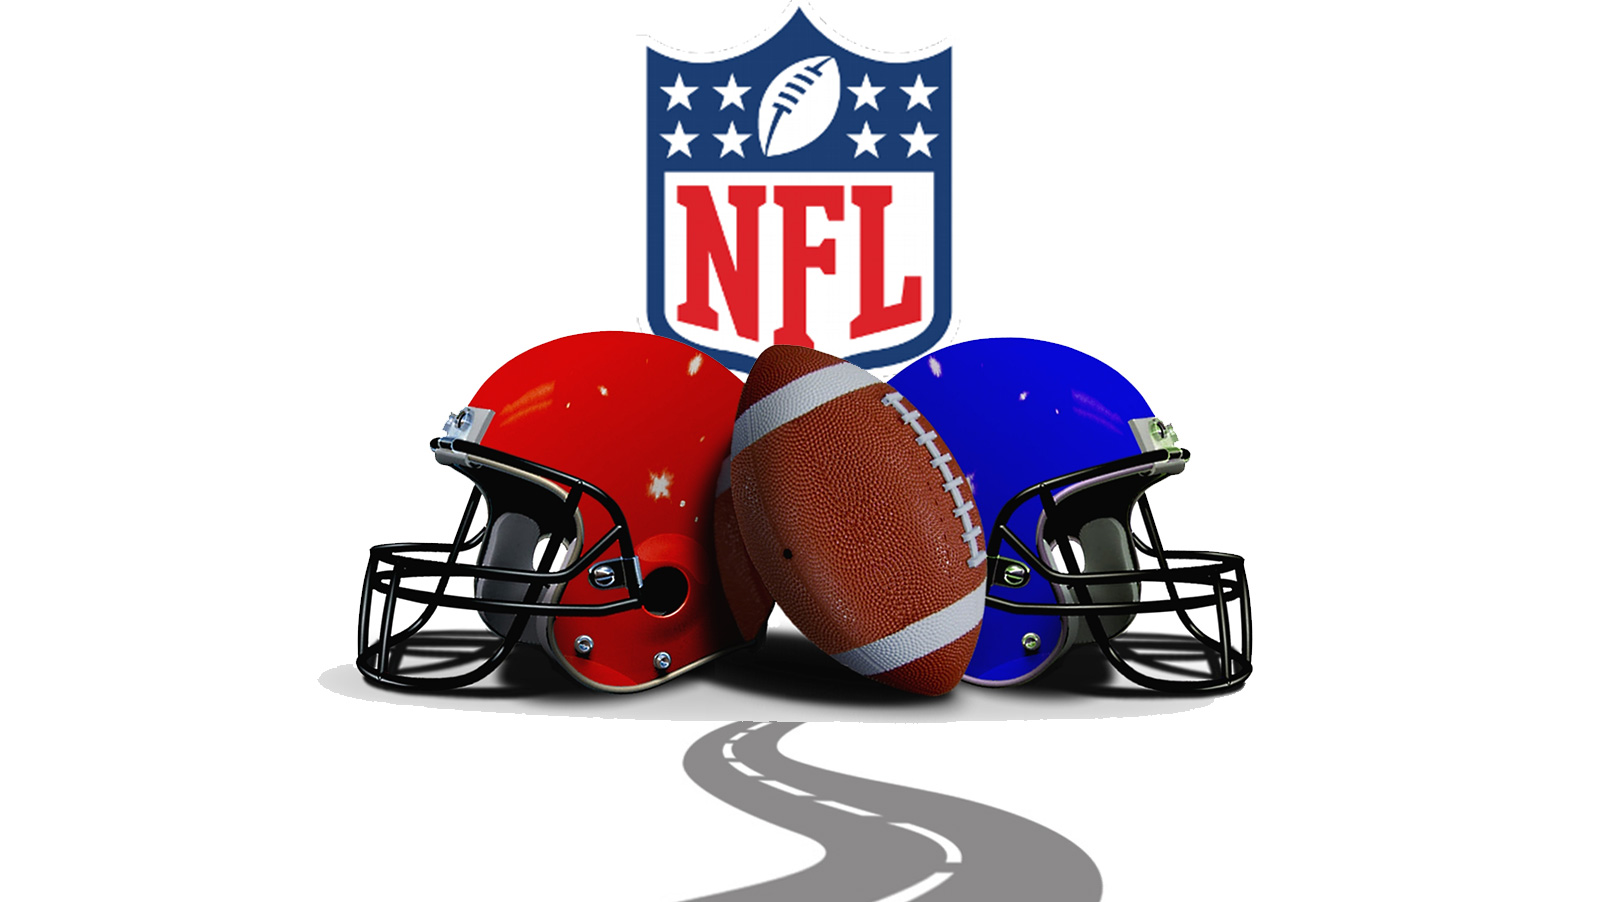 Road Teams Coming off 4-0 ATS Mark Heading into Divisional Round